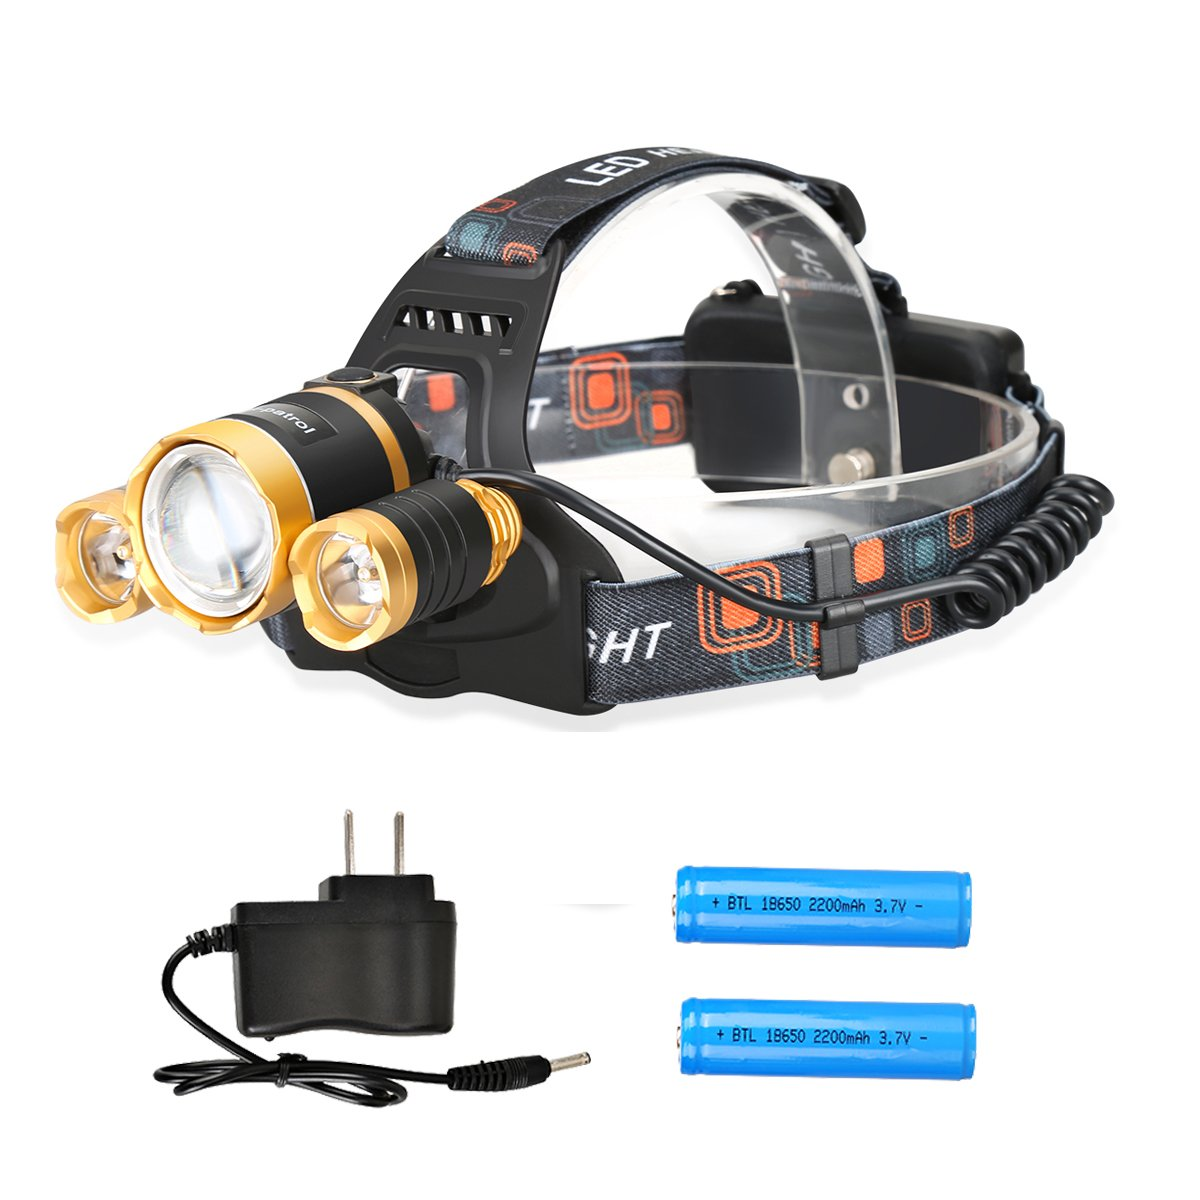 Domi-patrol Bright Led Headlamp Flashlight Heavy-Duty Durable Hands-Free Zoomable Comfortable 5000 Lumens Led Flashlight Rechargeable With Rotatable Adjustable Head For Running Camping (Gold)